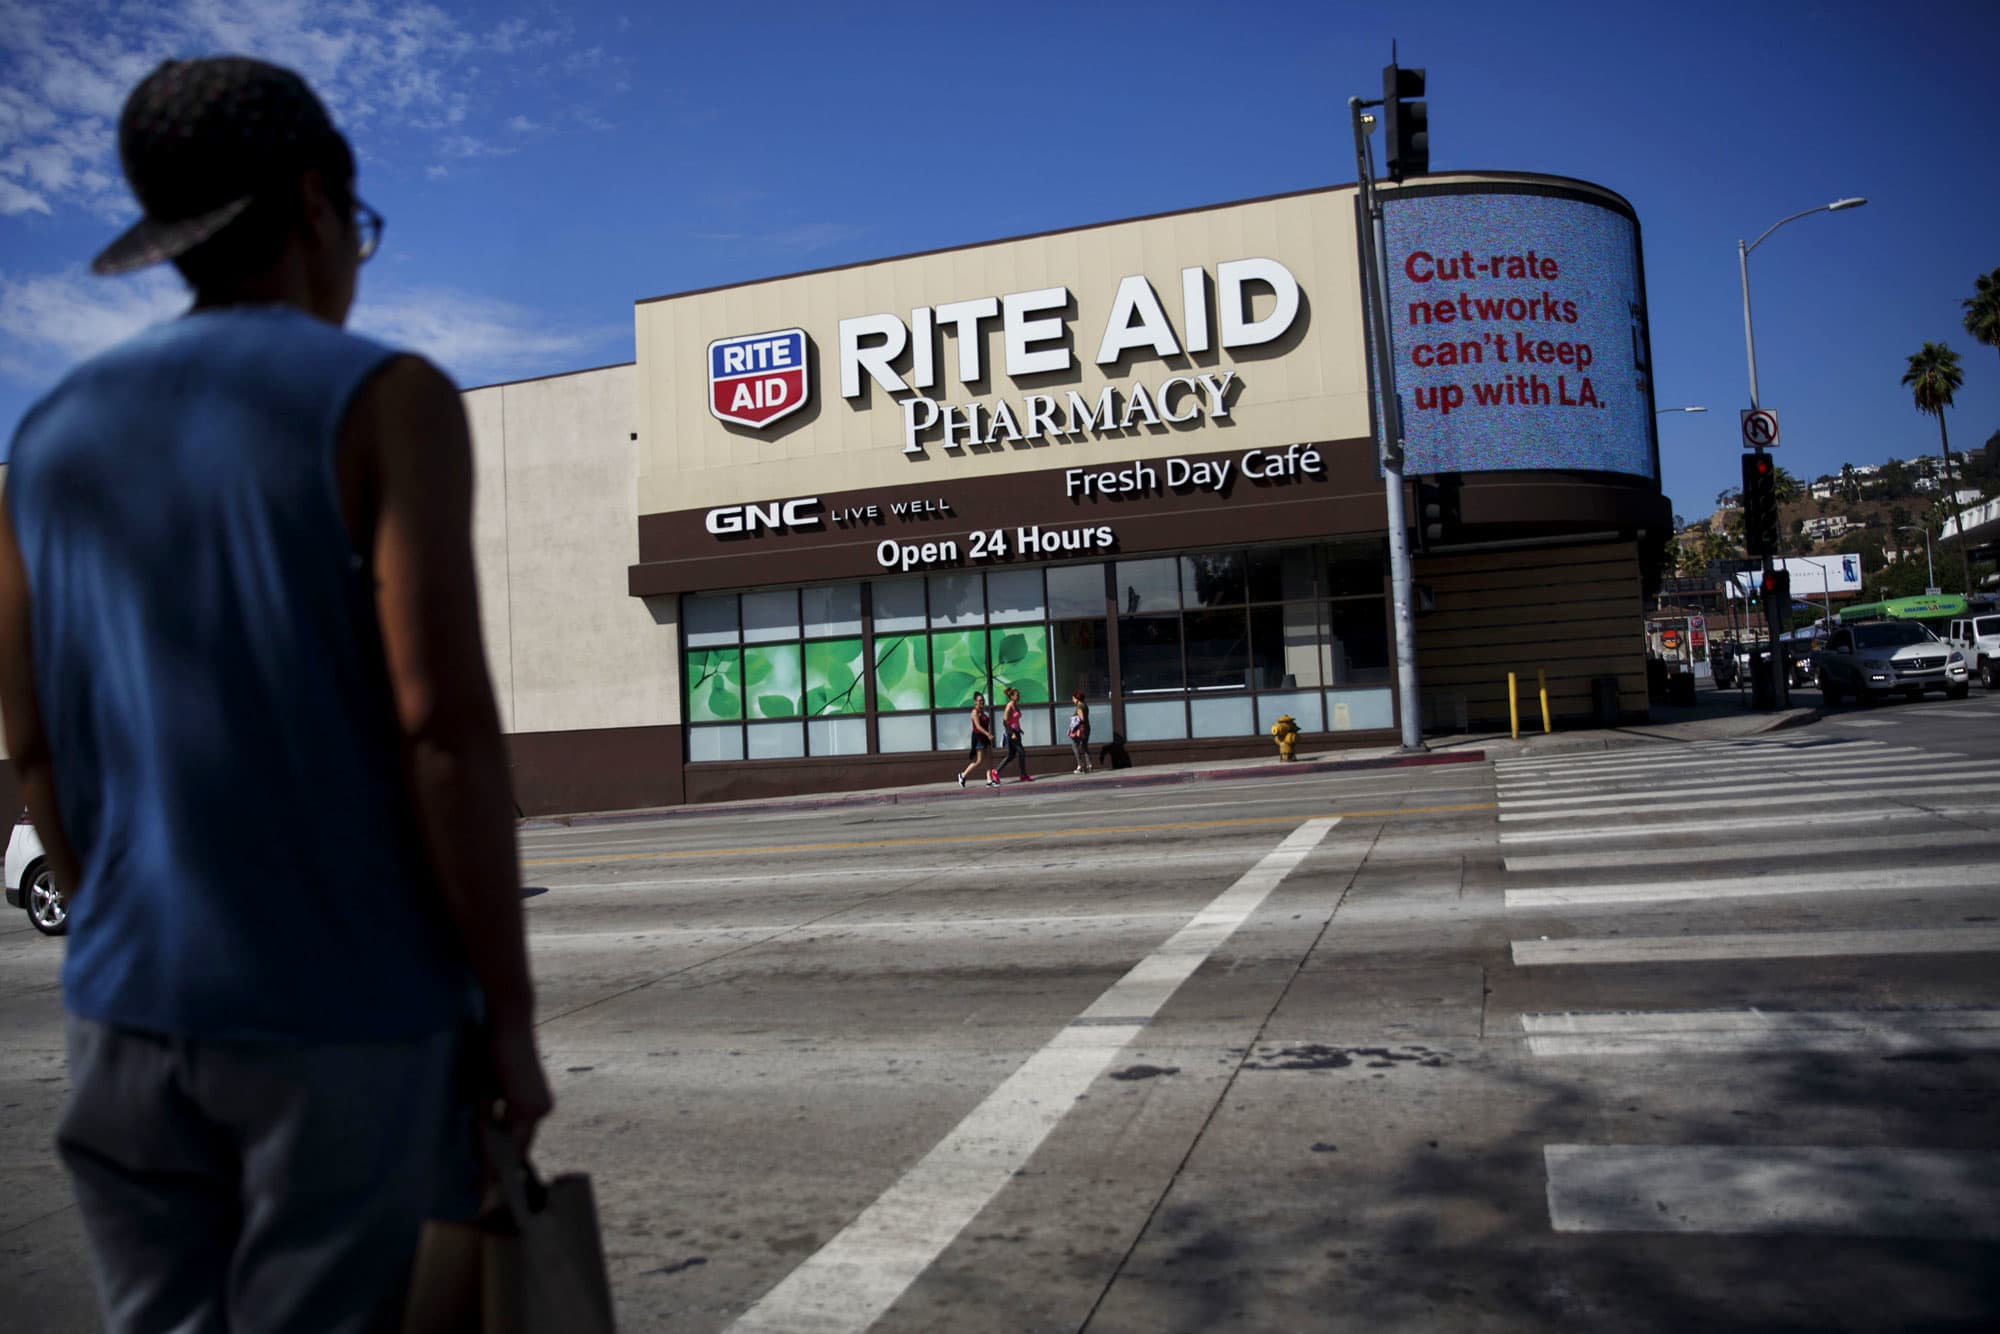 Amazon launches new in-store pickup option with Rite Aid as its first partner